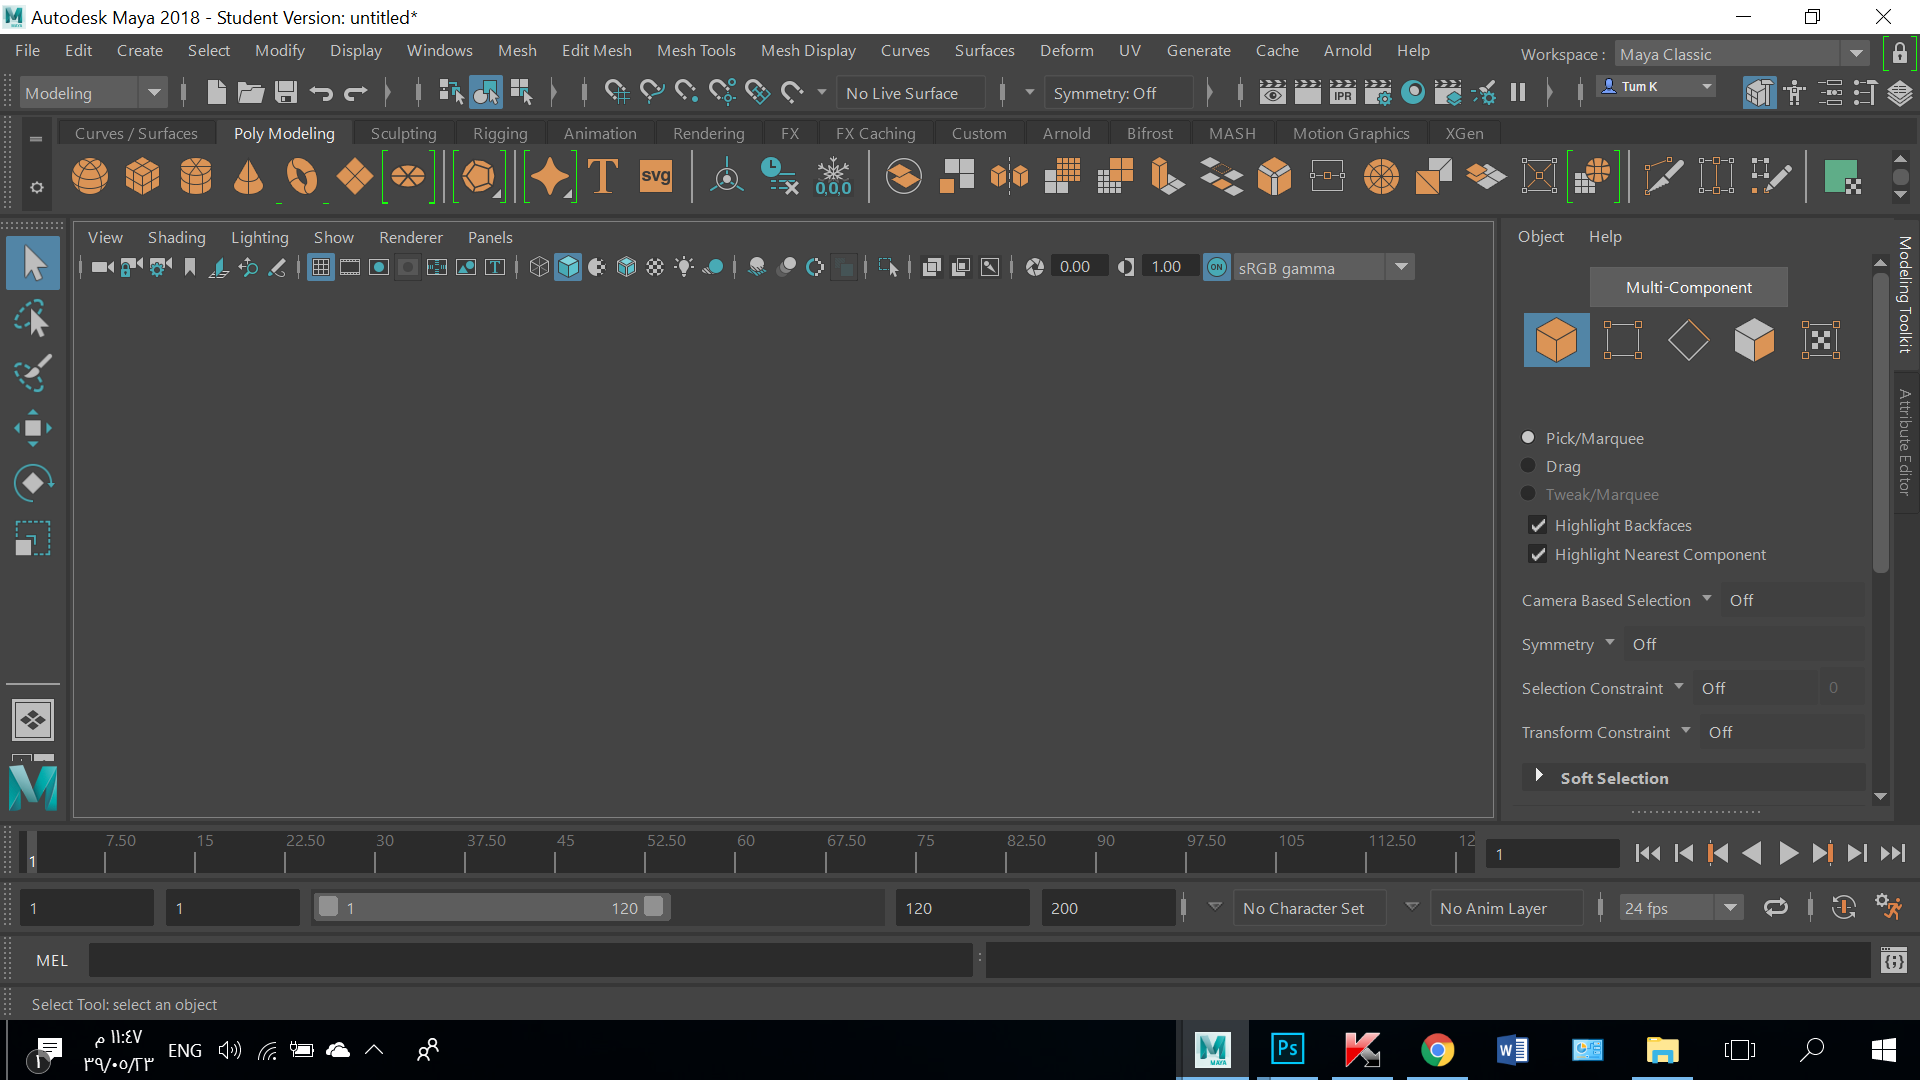 Solved: The black screen problem in Maya 2018 - Autodesk